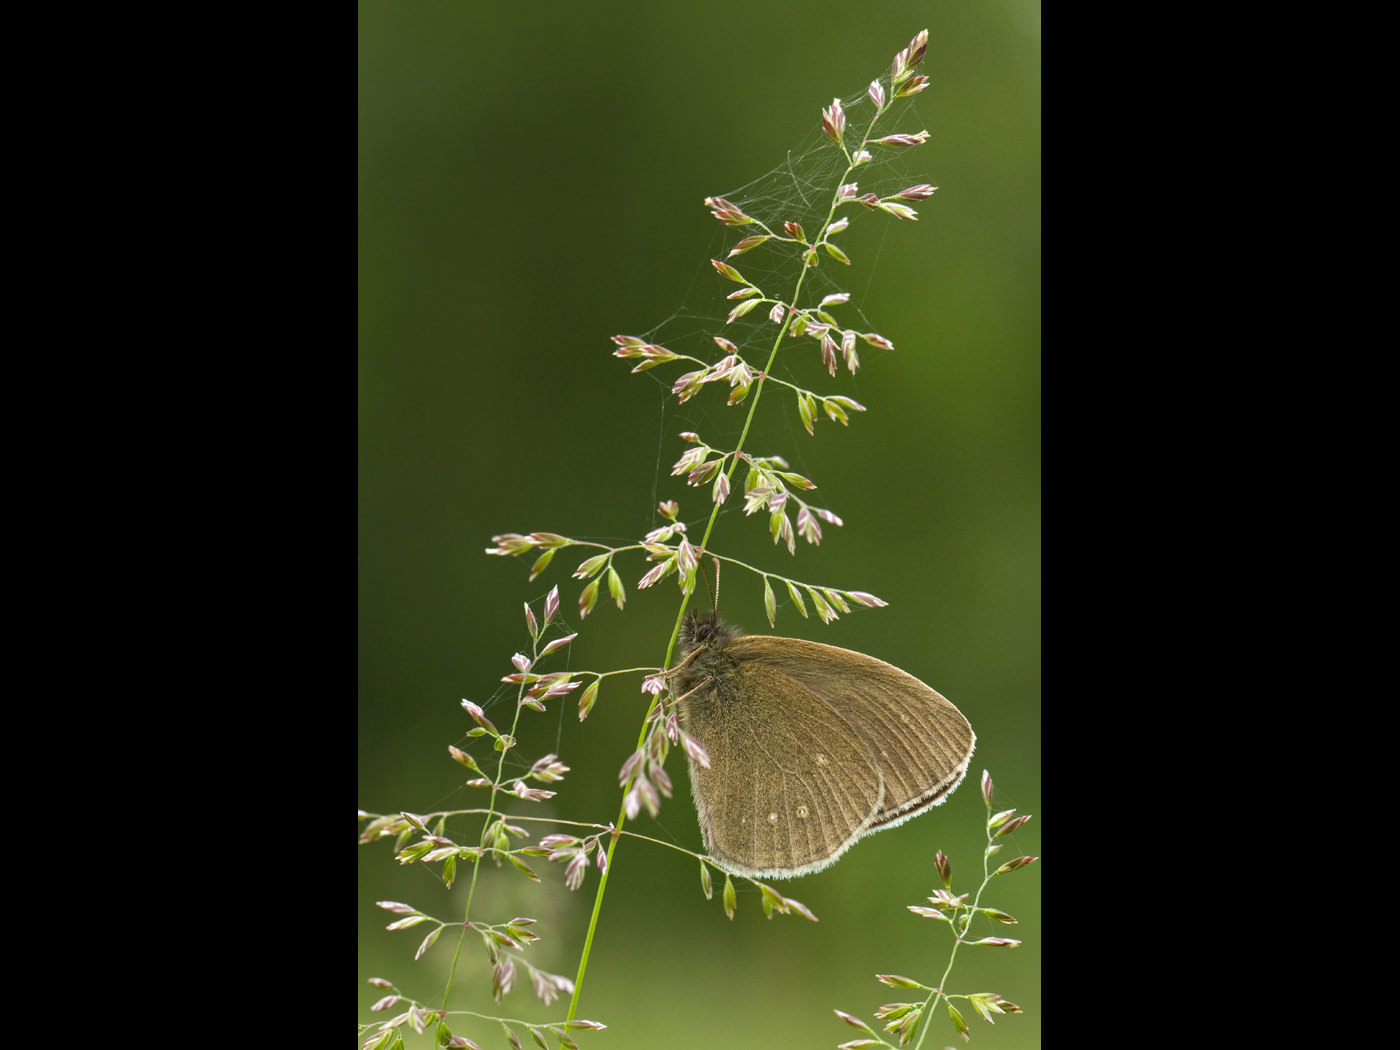 Projected Image - 2nd Place: Ringlet by Stephanie Cowie